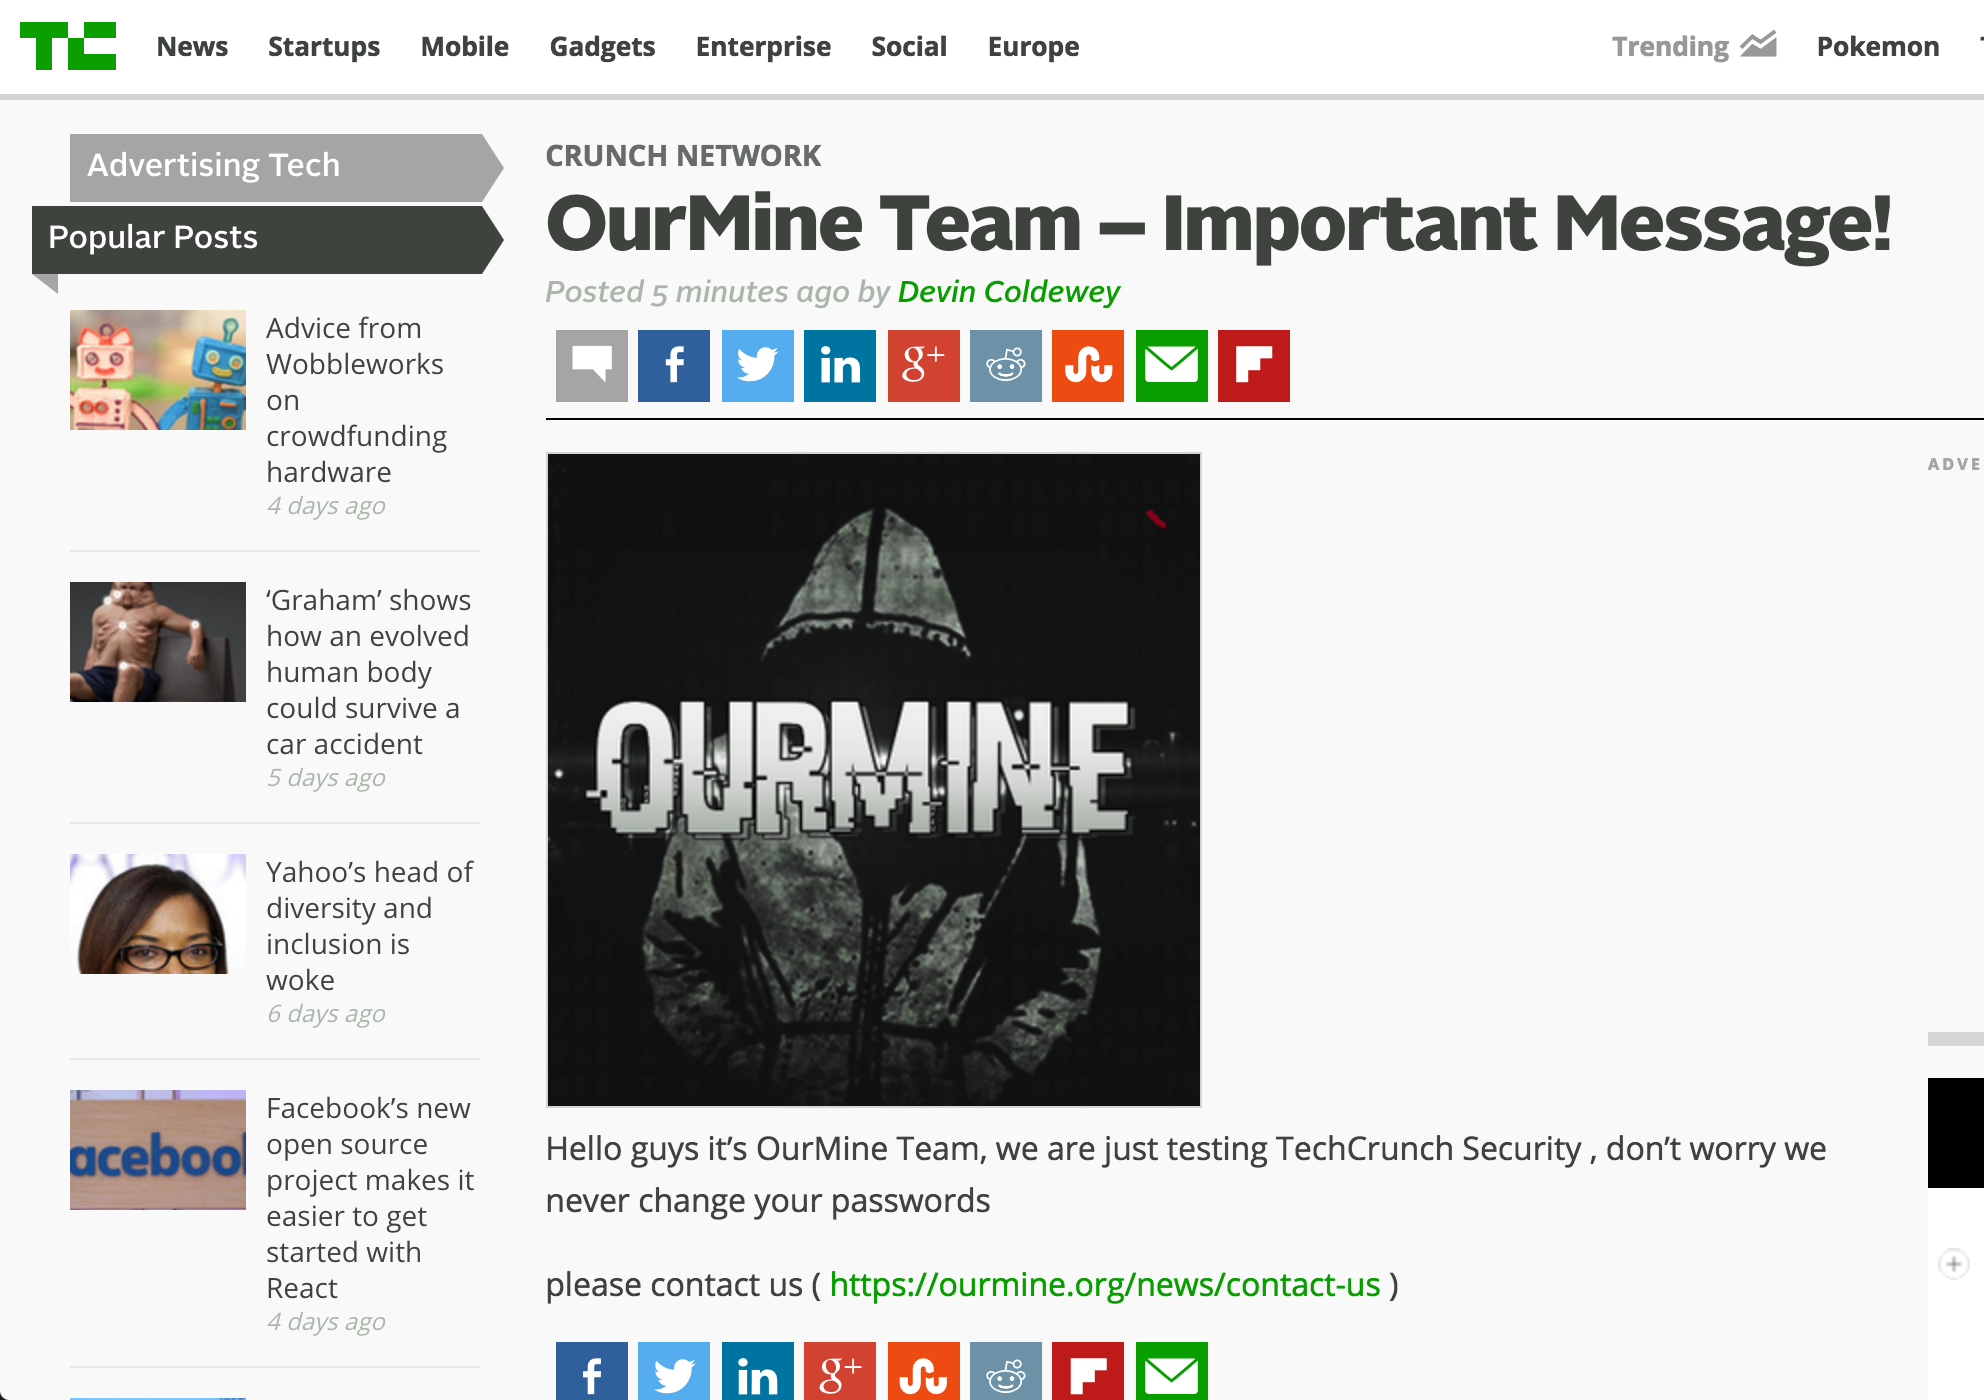 OurMine TechCrunch